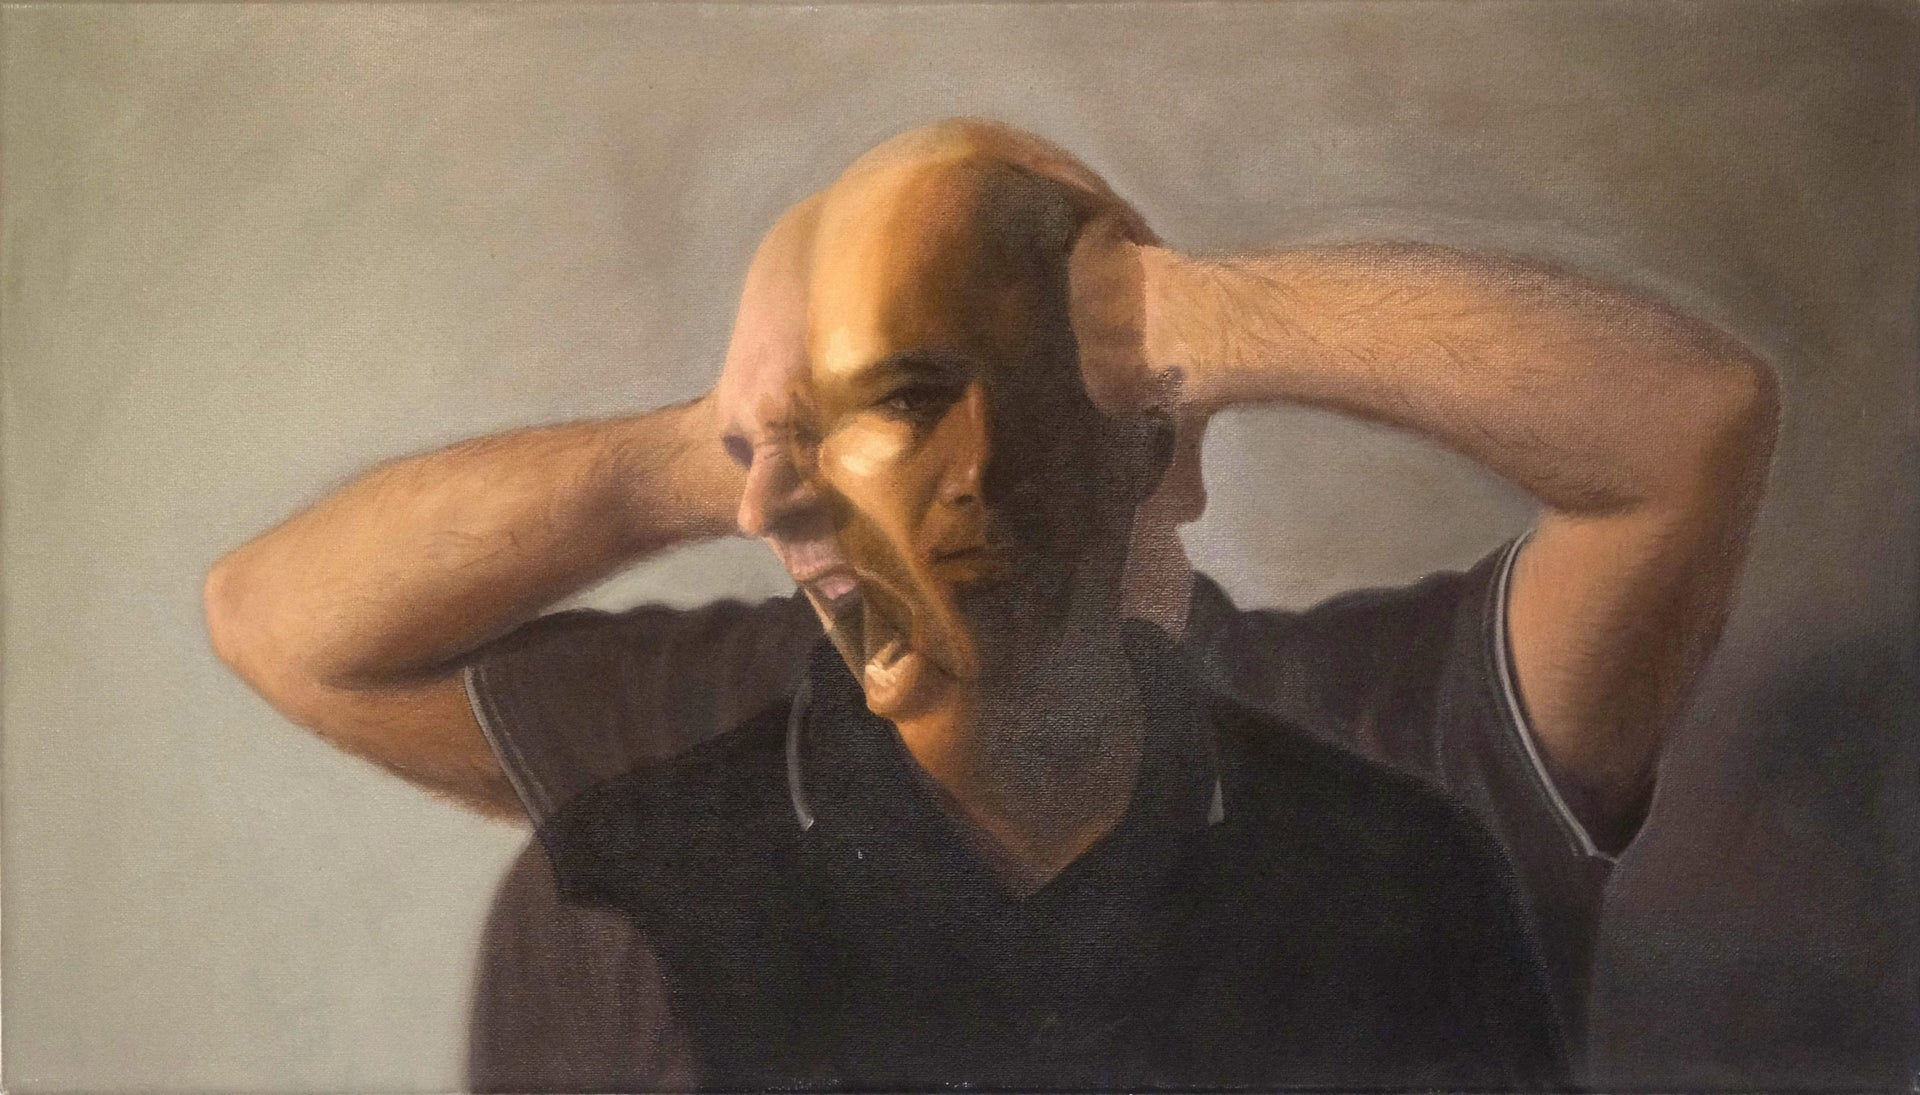 """A detail from a self-portrait by Michael Halak, 2011, from """"The Identity of the Palestinian Artist."""" In the painting, the image of a man's head and shoulders as he shouts or cries out, his bent arms at either side of his head, is superimposed upon the image of the same man looking calmly straight ahead, his arms presumably against his body."""